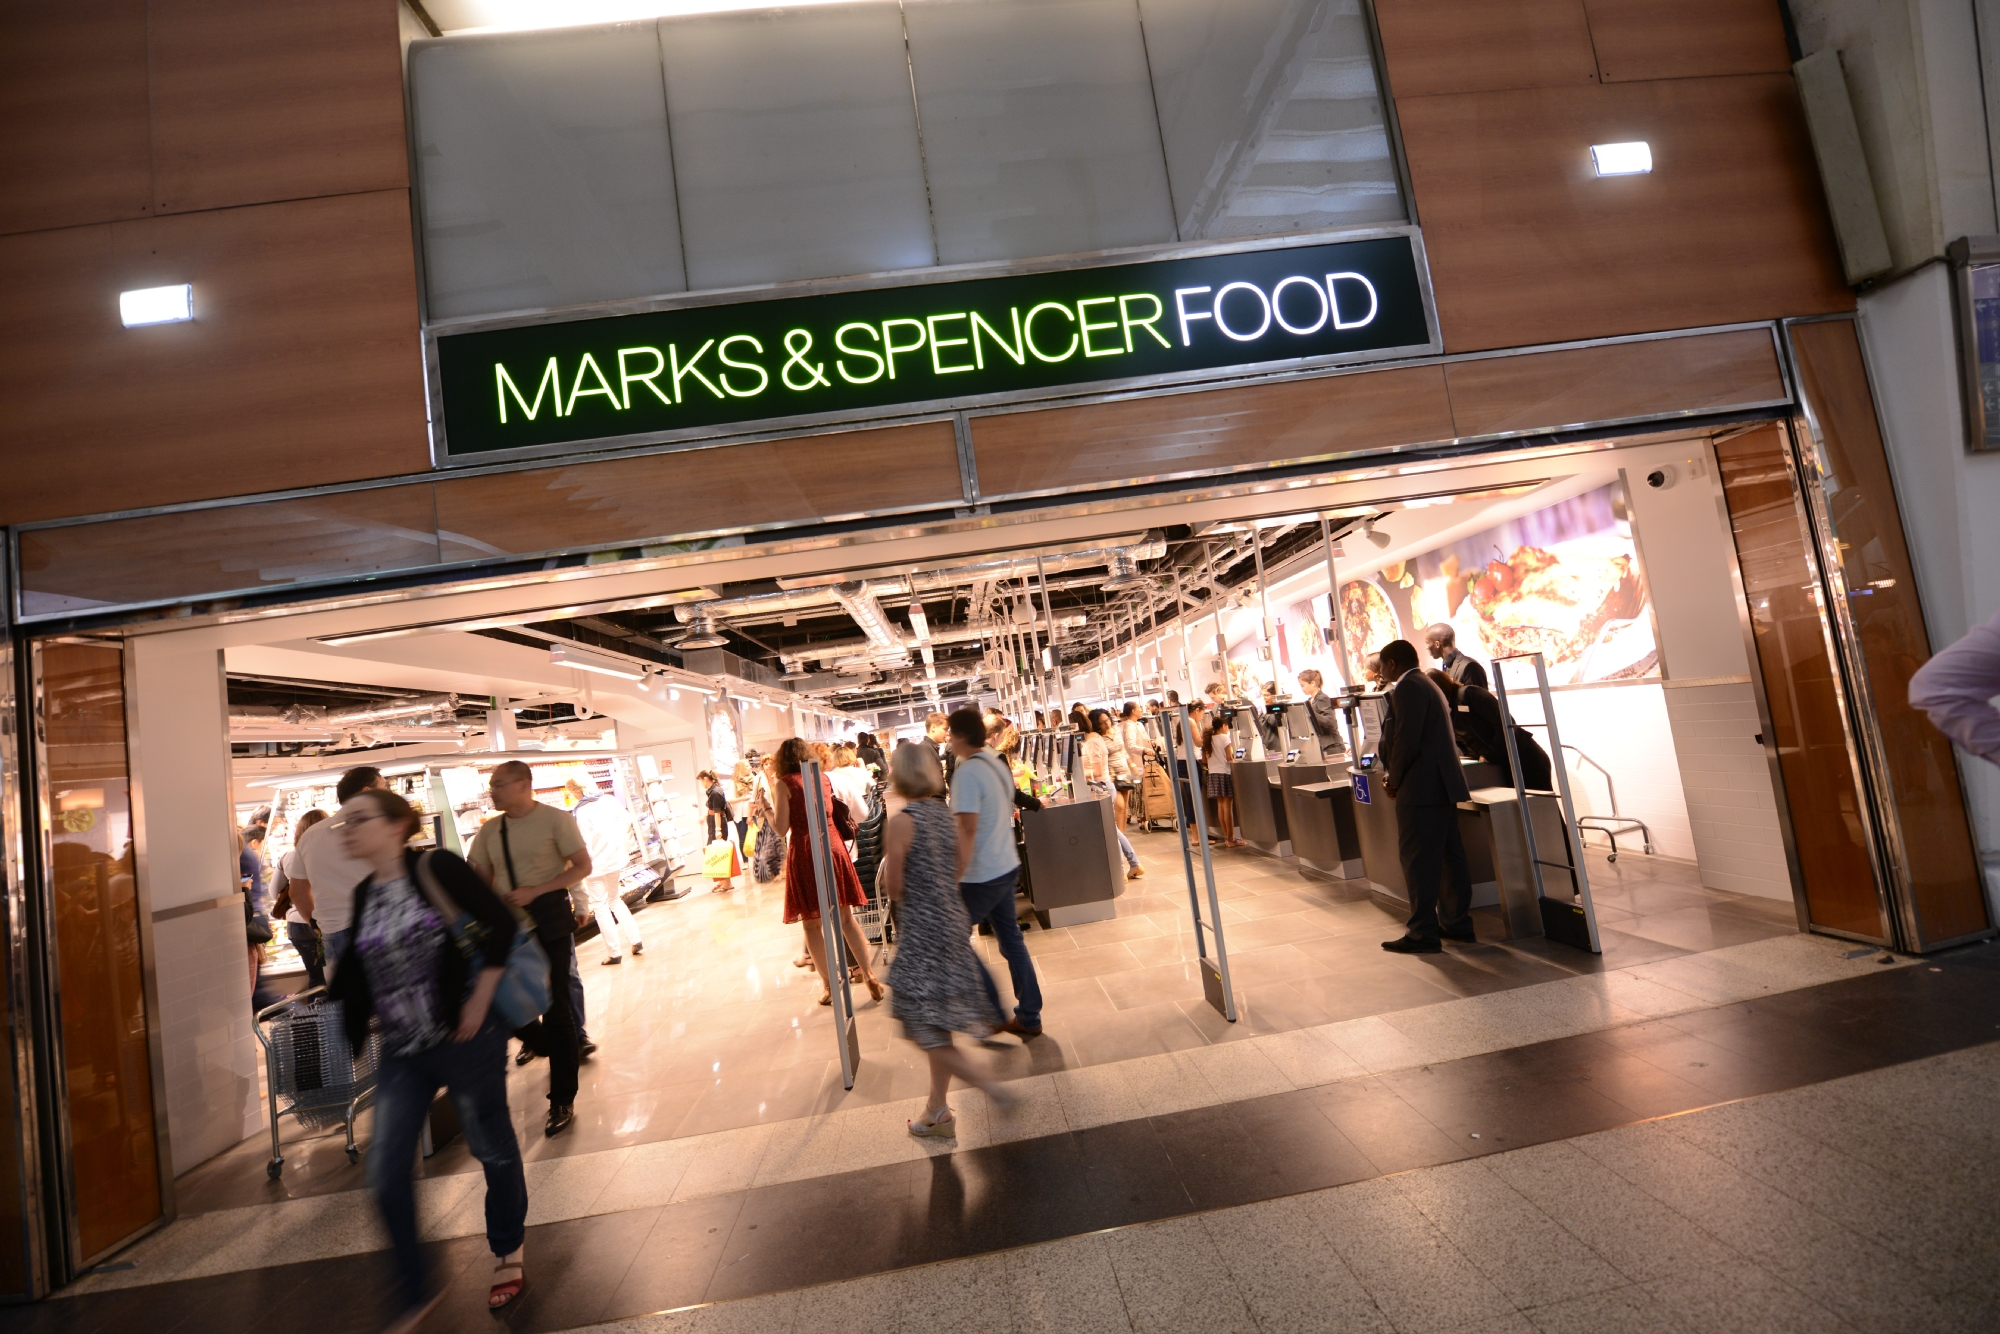 marks and spencer culture 912 reviews from marks and spencer employees about culture.